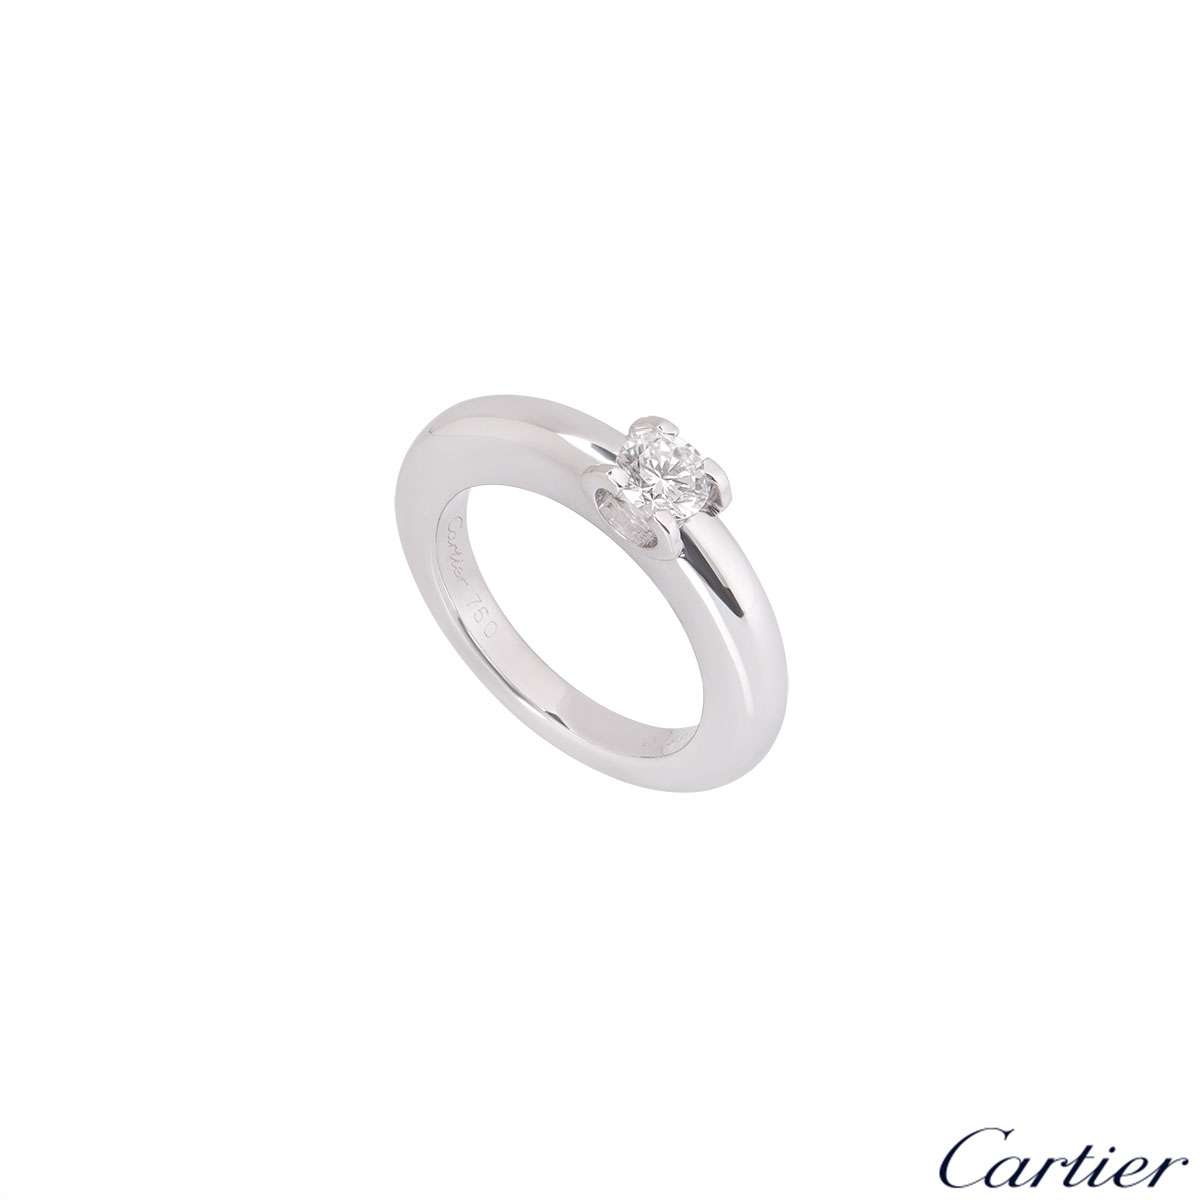 Cartier 18k White Gold Diamond C De Cartier Ring Size 48